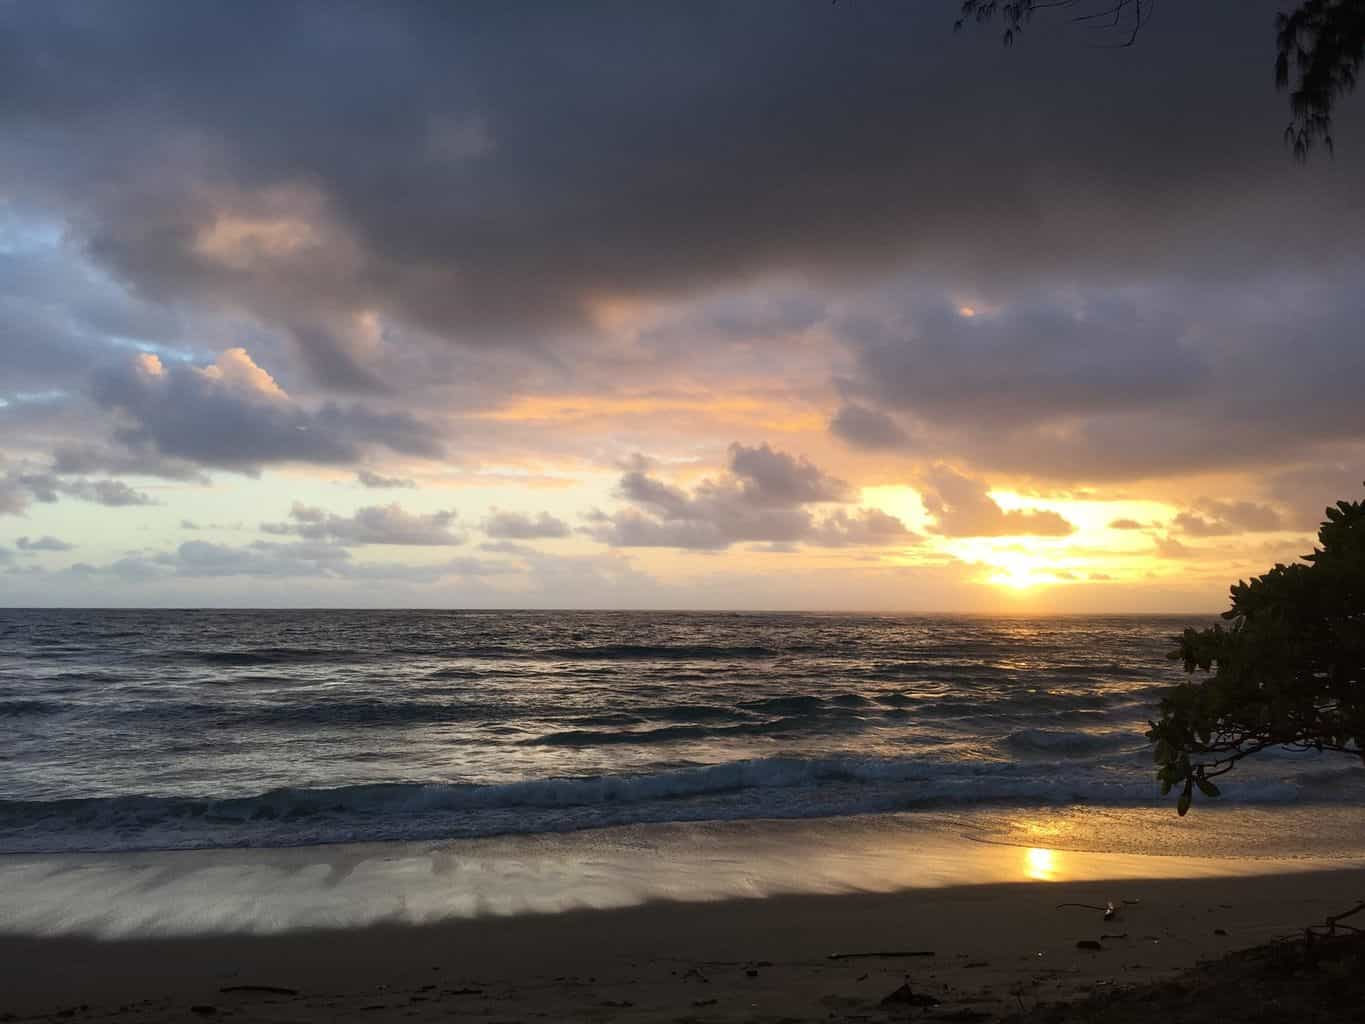 Sunrise this morning in the North Shore of Oahu — at North Shore, Oahu, Hawaii.